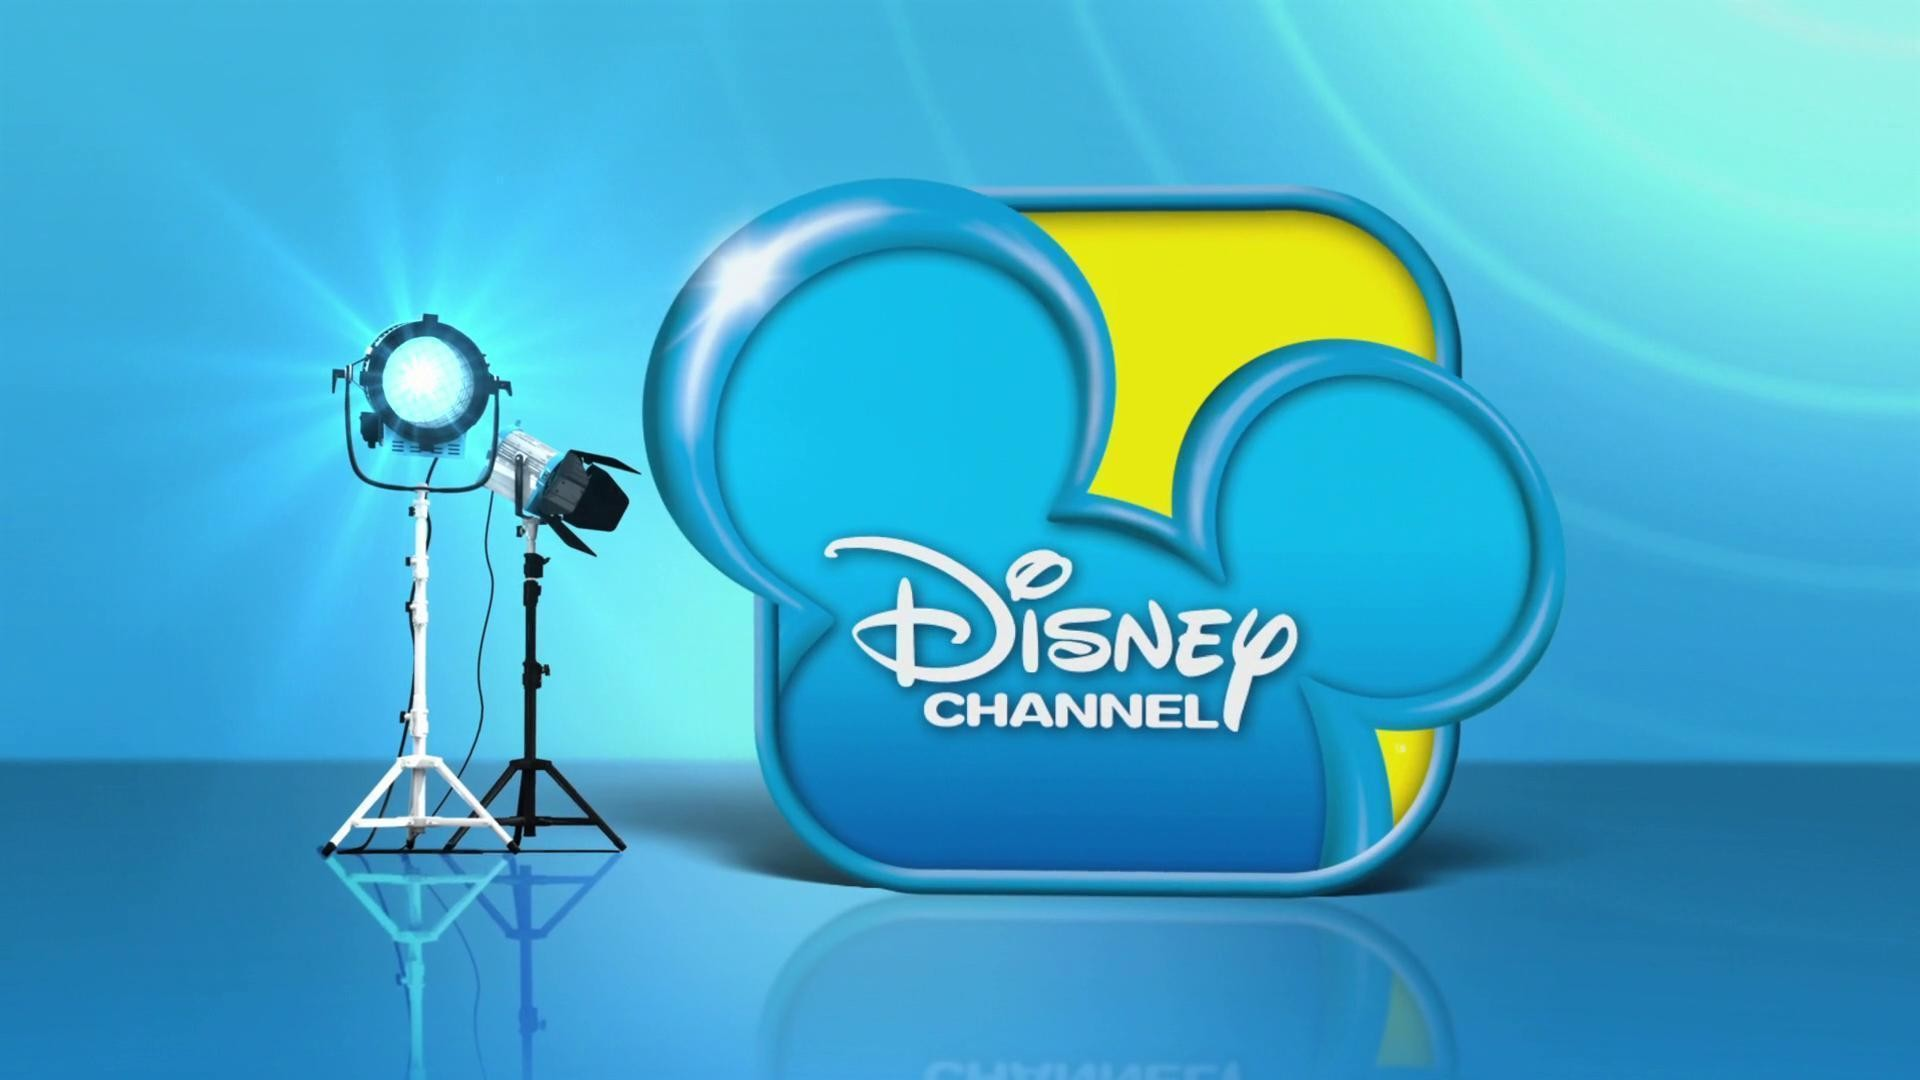 Disney Channel Wallpapers 56 Images